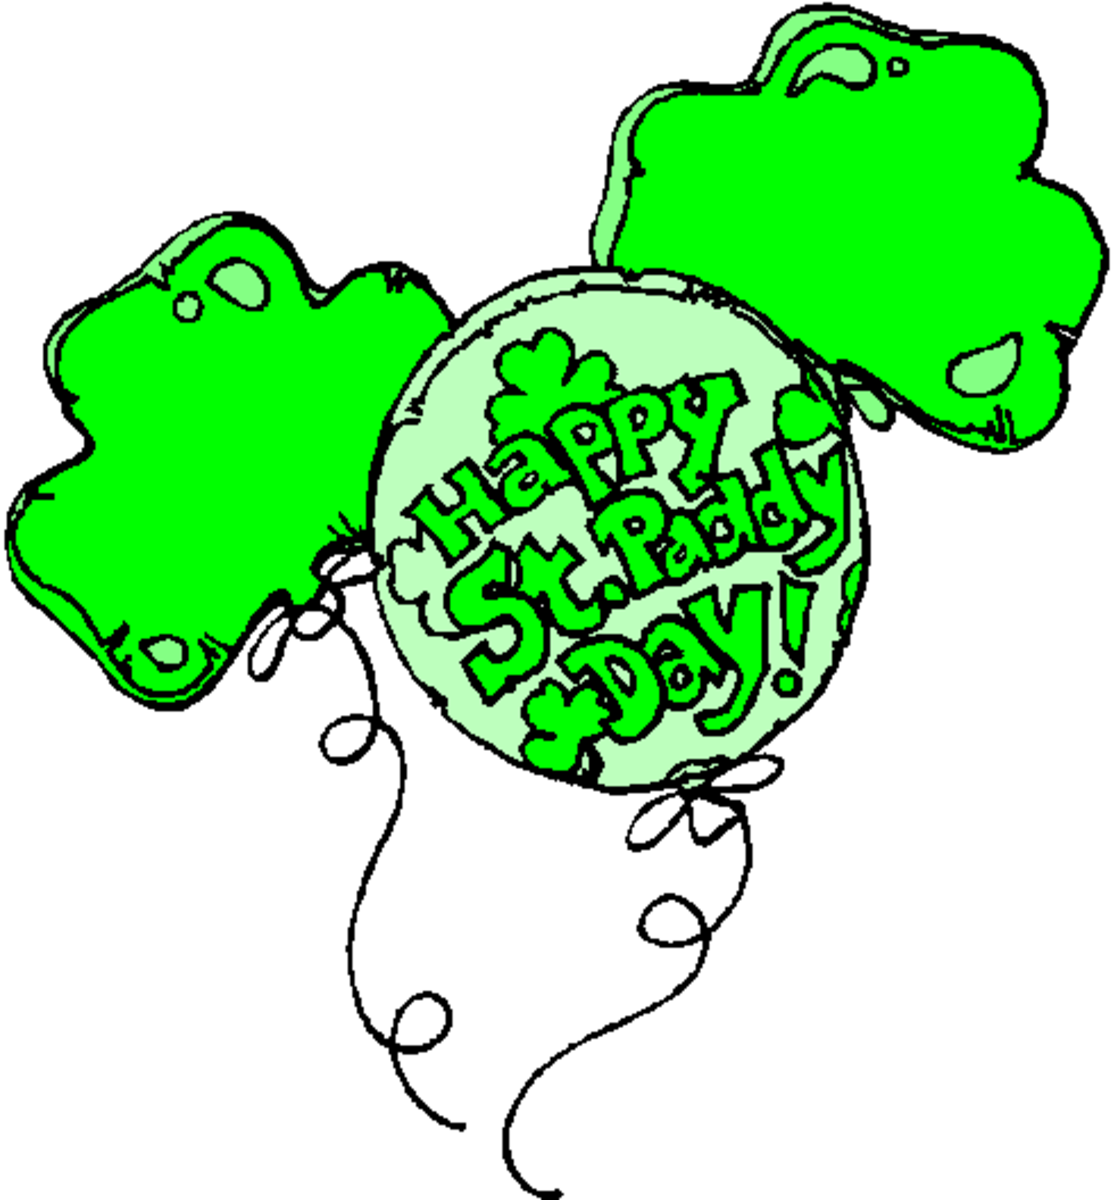 'Happy St. Paddy's Day' on Shamrock Balloons